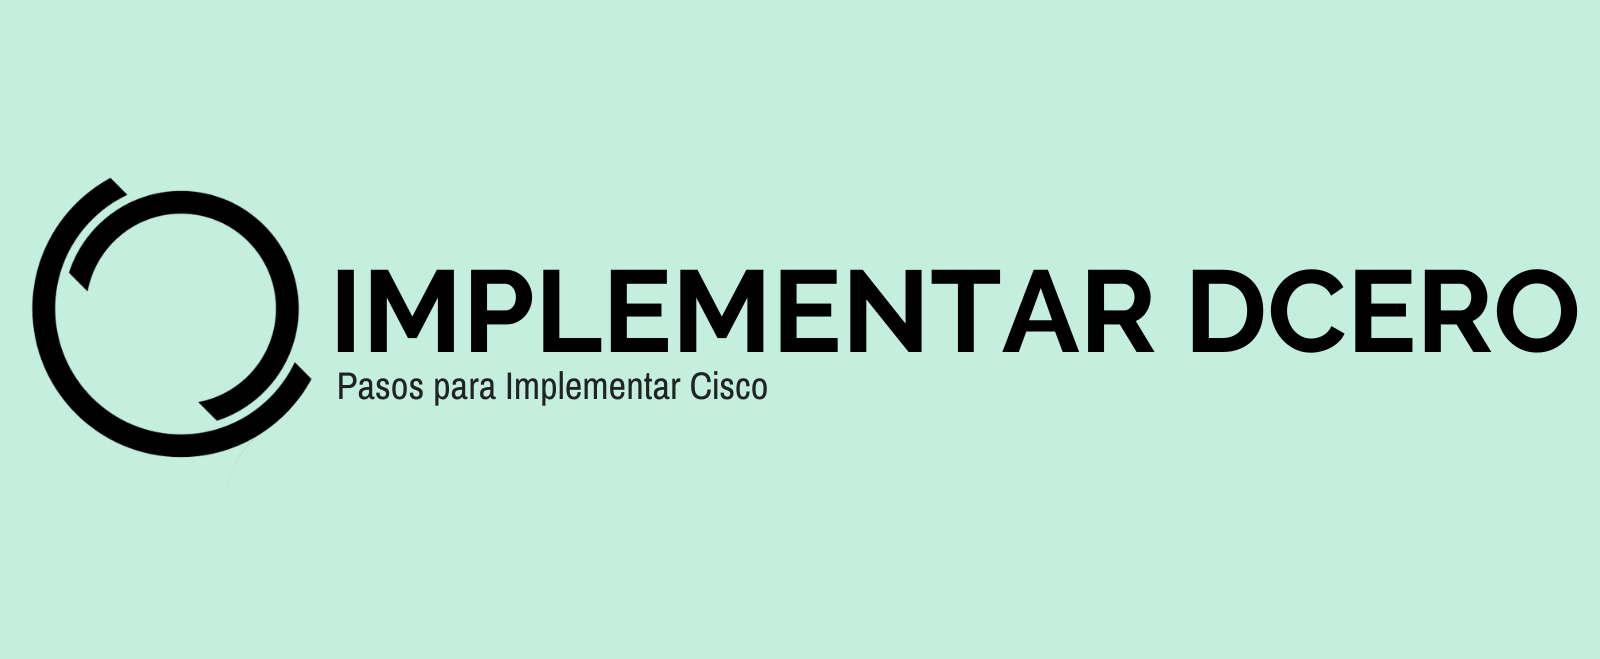 Implementar Cisco